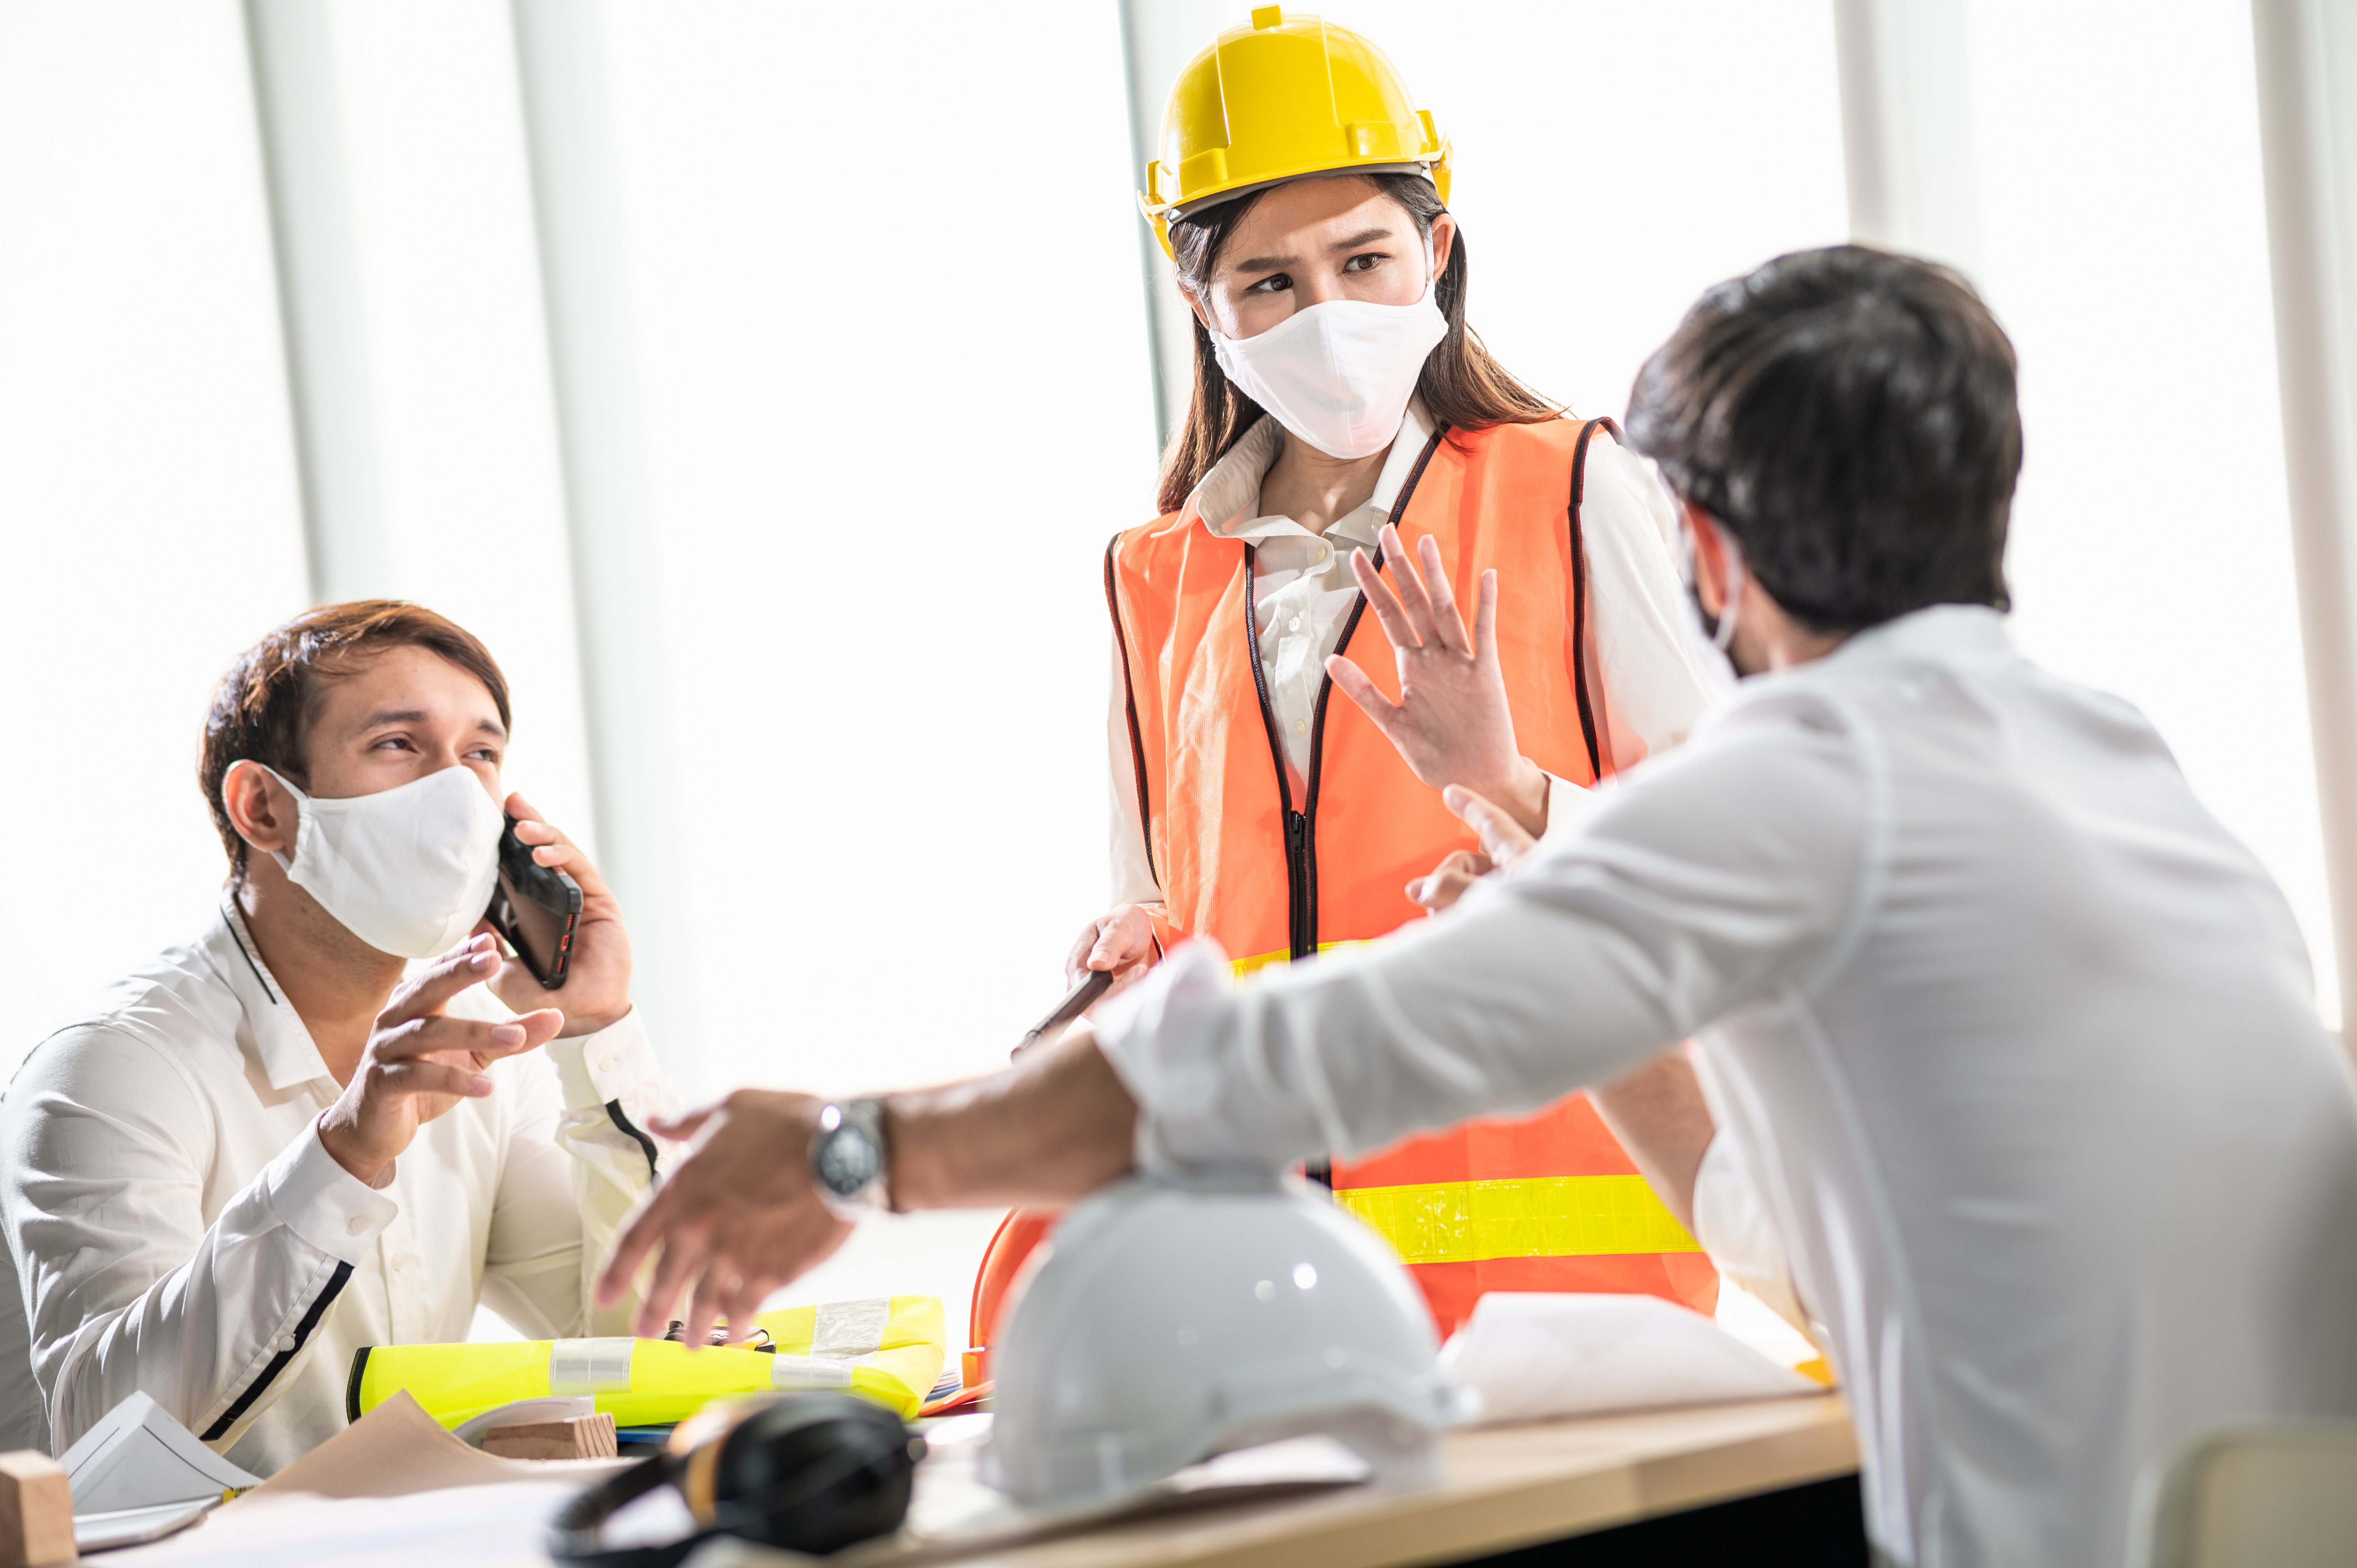 COVID-19 Workplace Safety